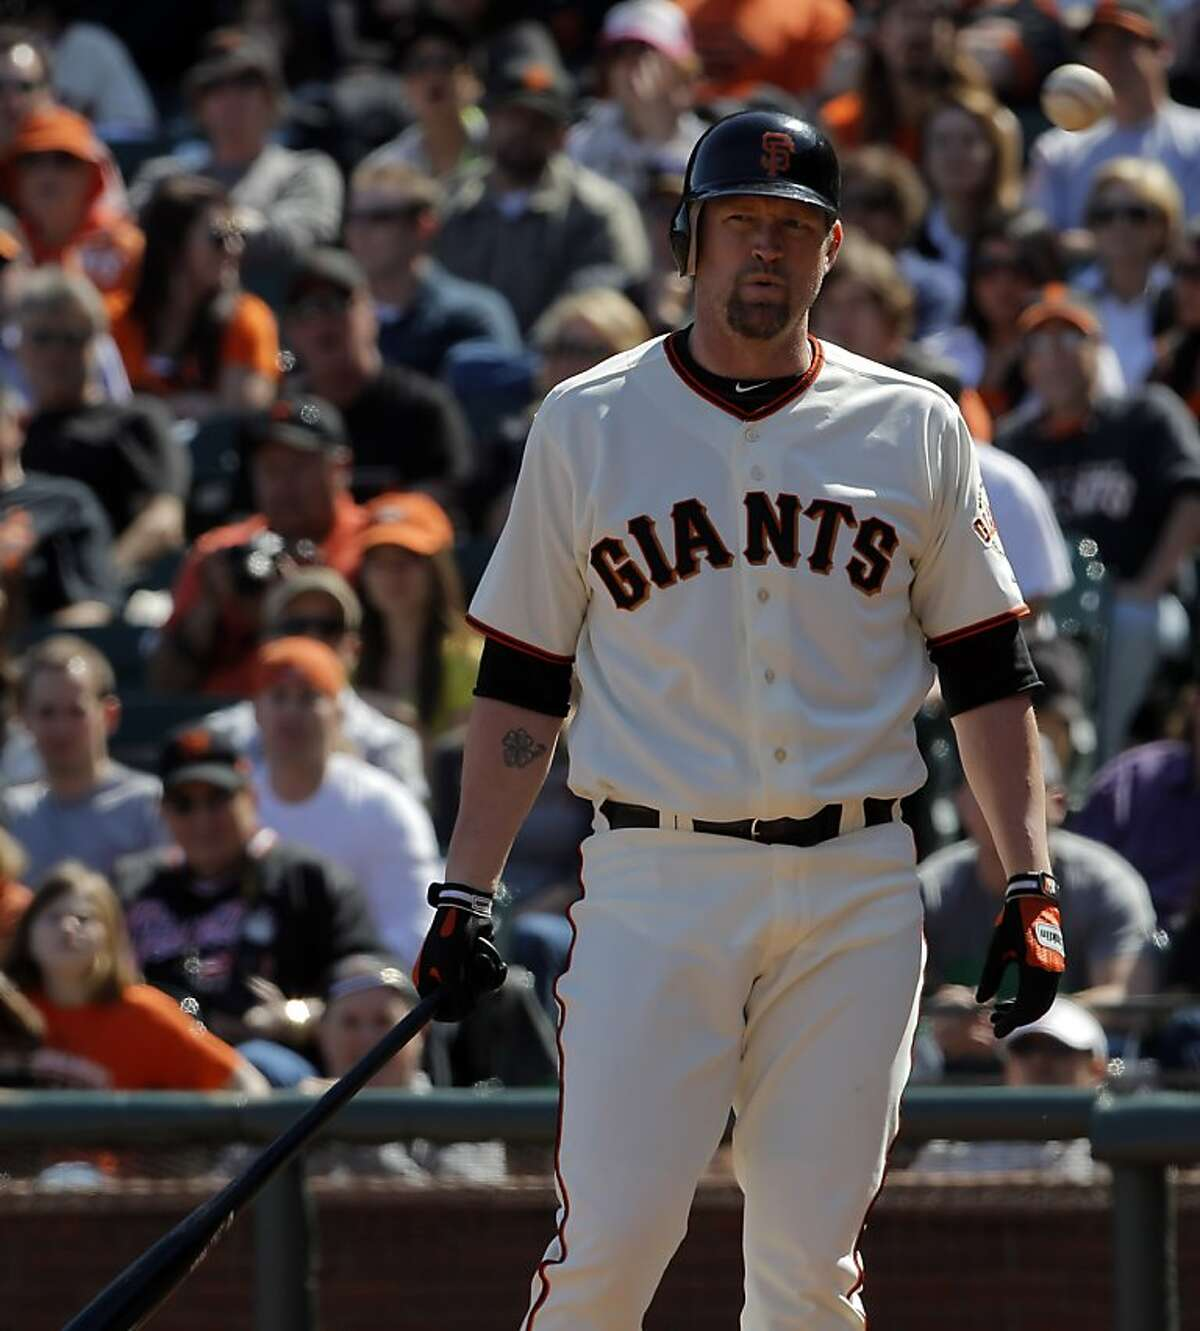 Aubrey Huff reacts to a strike call in his pinch-hit at bat in the seventh inning. Huff flied out with a runner on third. The San Francisco Giants played the Pittsburgh Pirates at AT&T Park in San Francisco, Calif., on Sunday, April 15, 2012. The Giants lost 1-4.